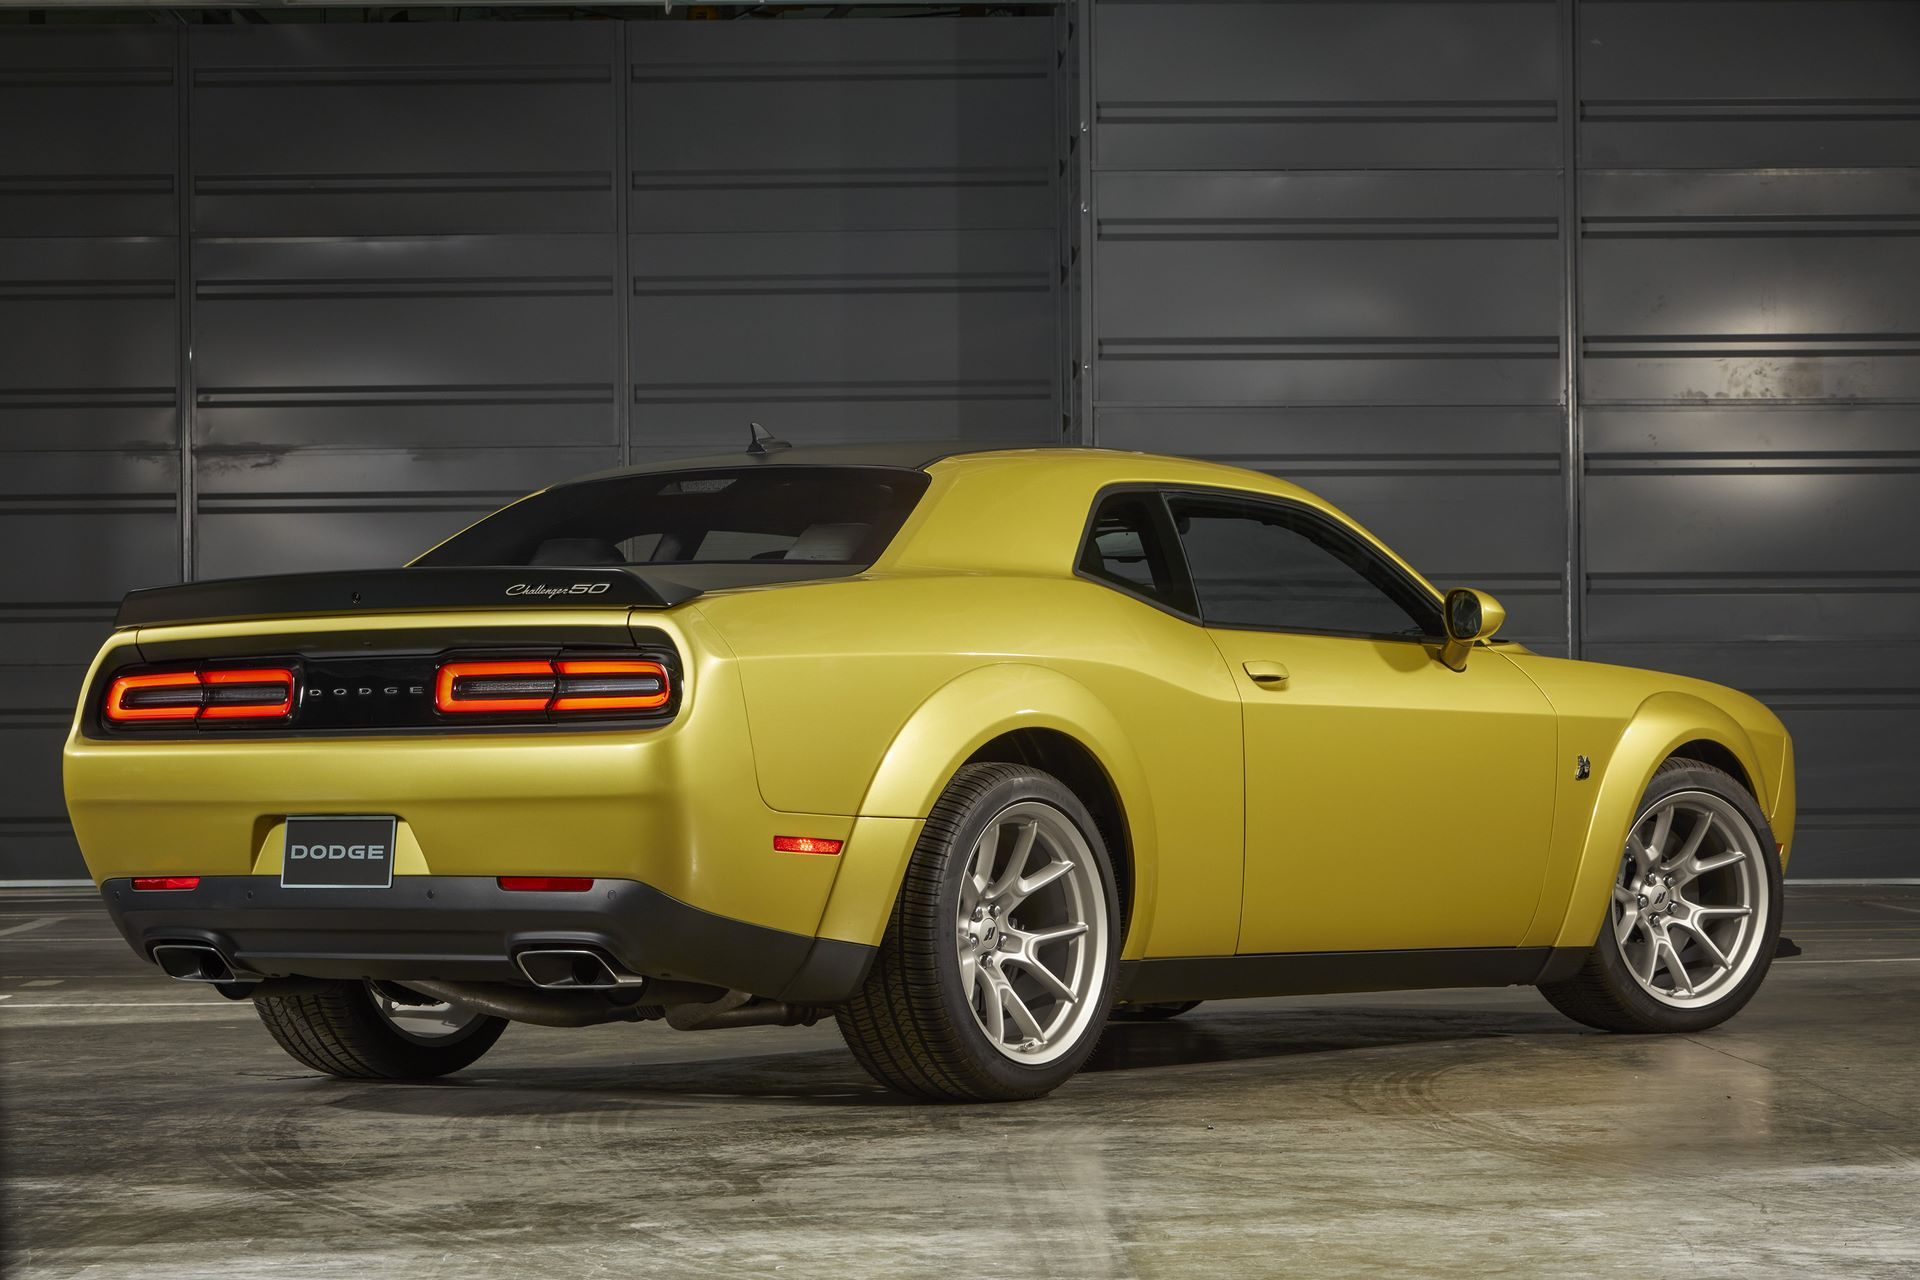 Challenger R/T Scat Pack Widebody 50th Anniversary Edition in Gold Rush